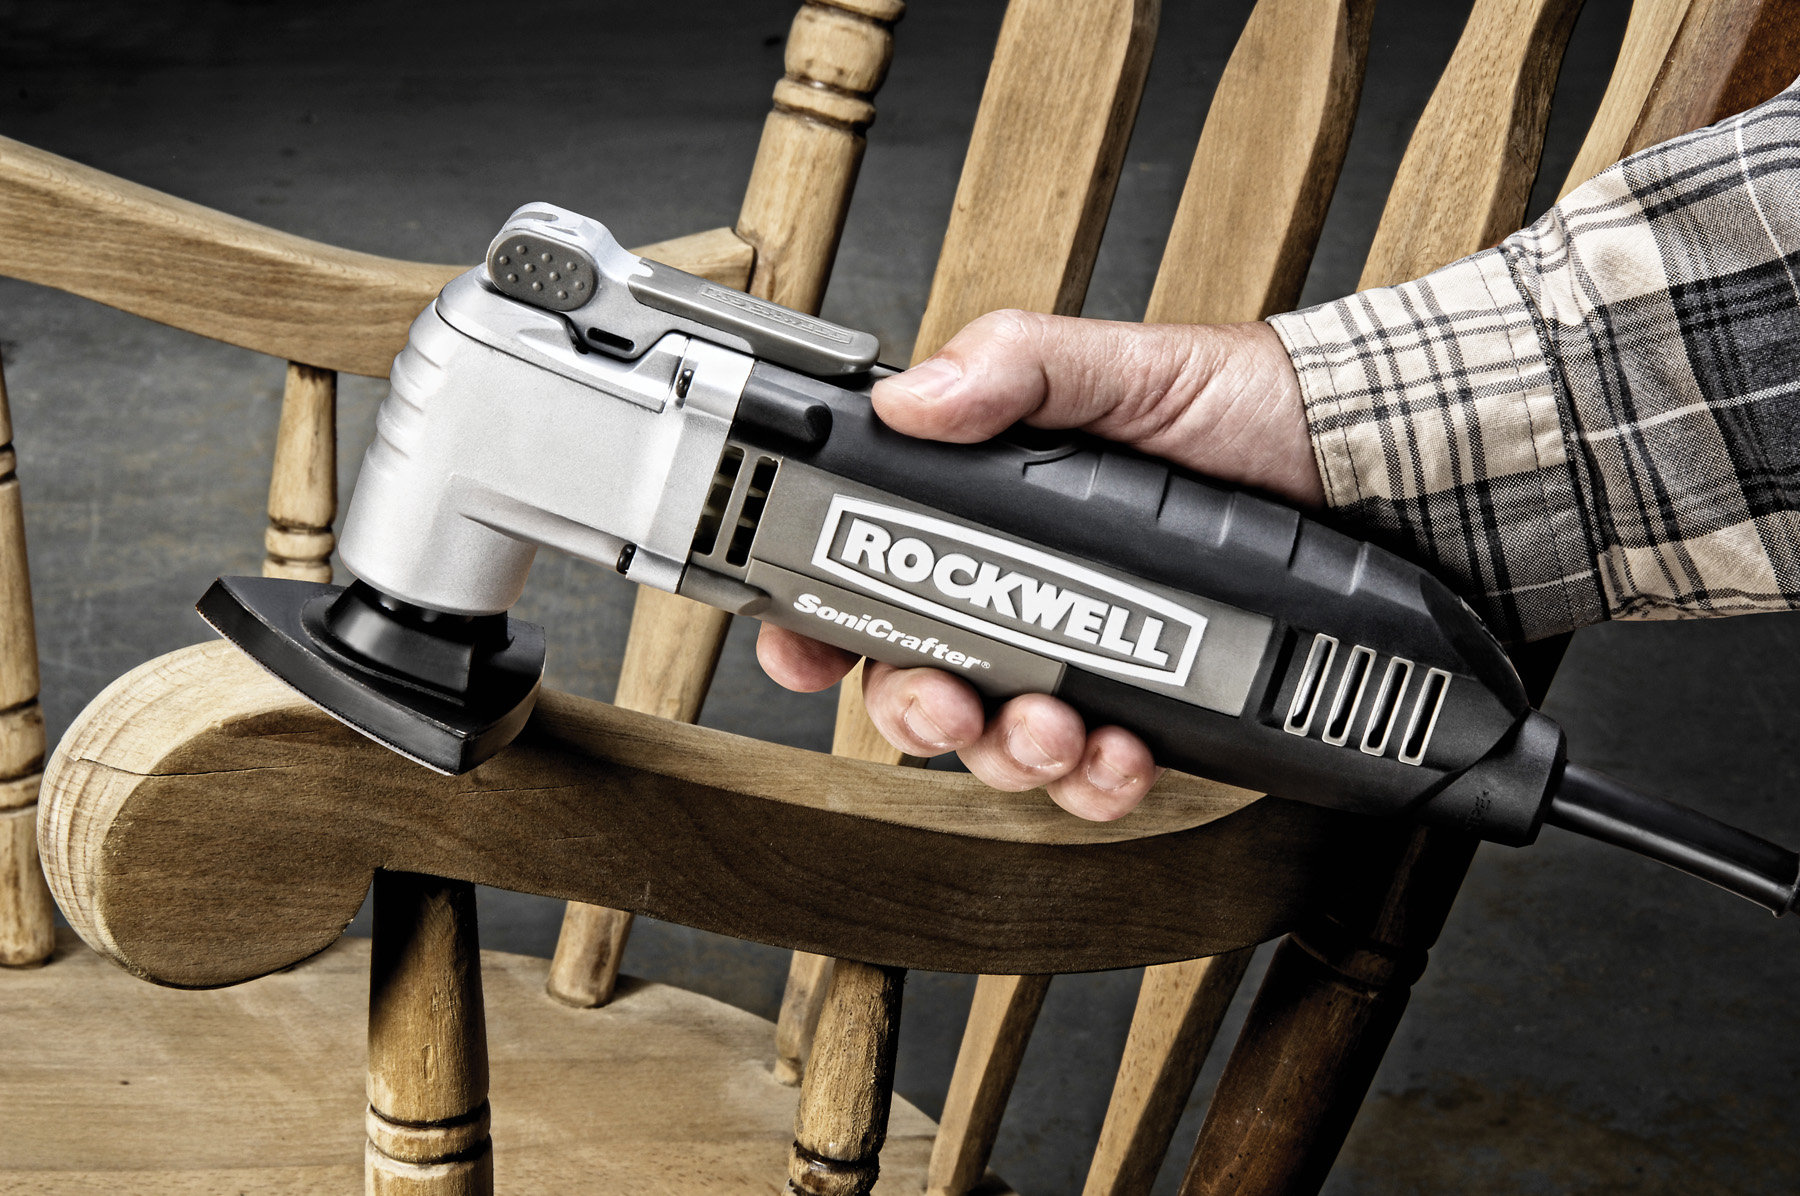 Rockwell RK5139K Sonicrafter Hyperlock with Universal Fit